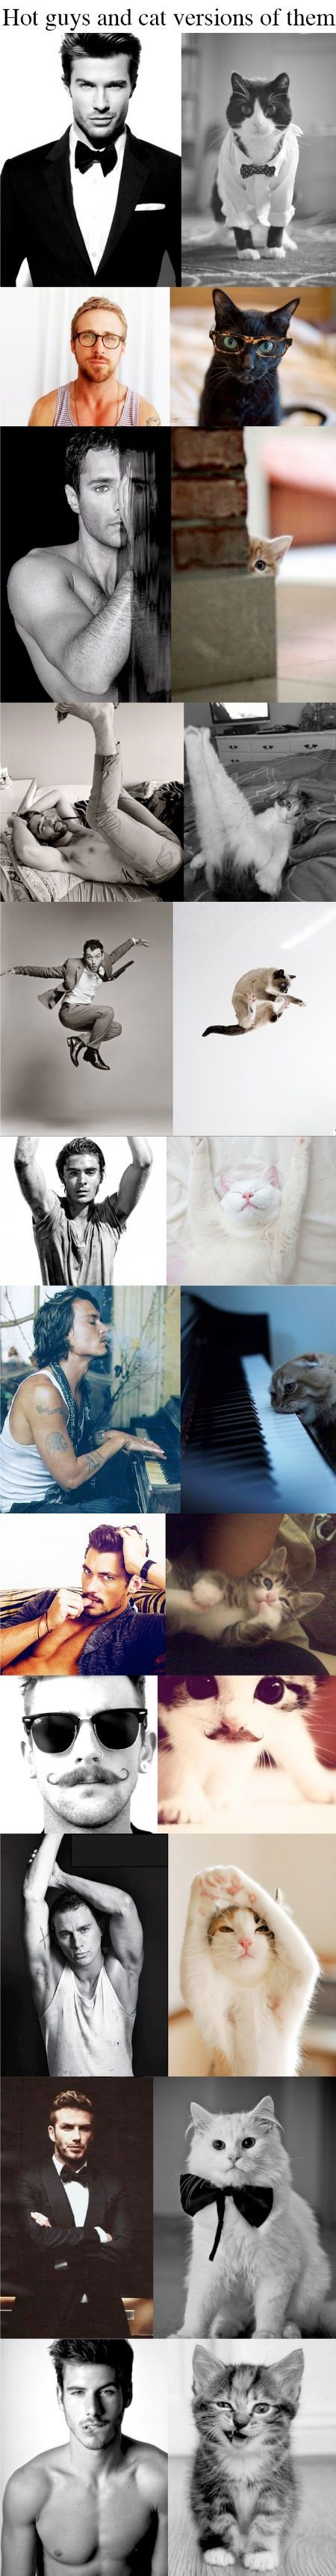 Hot Guys And Cat Version Of Them